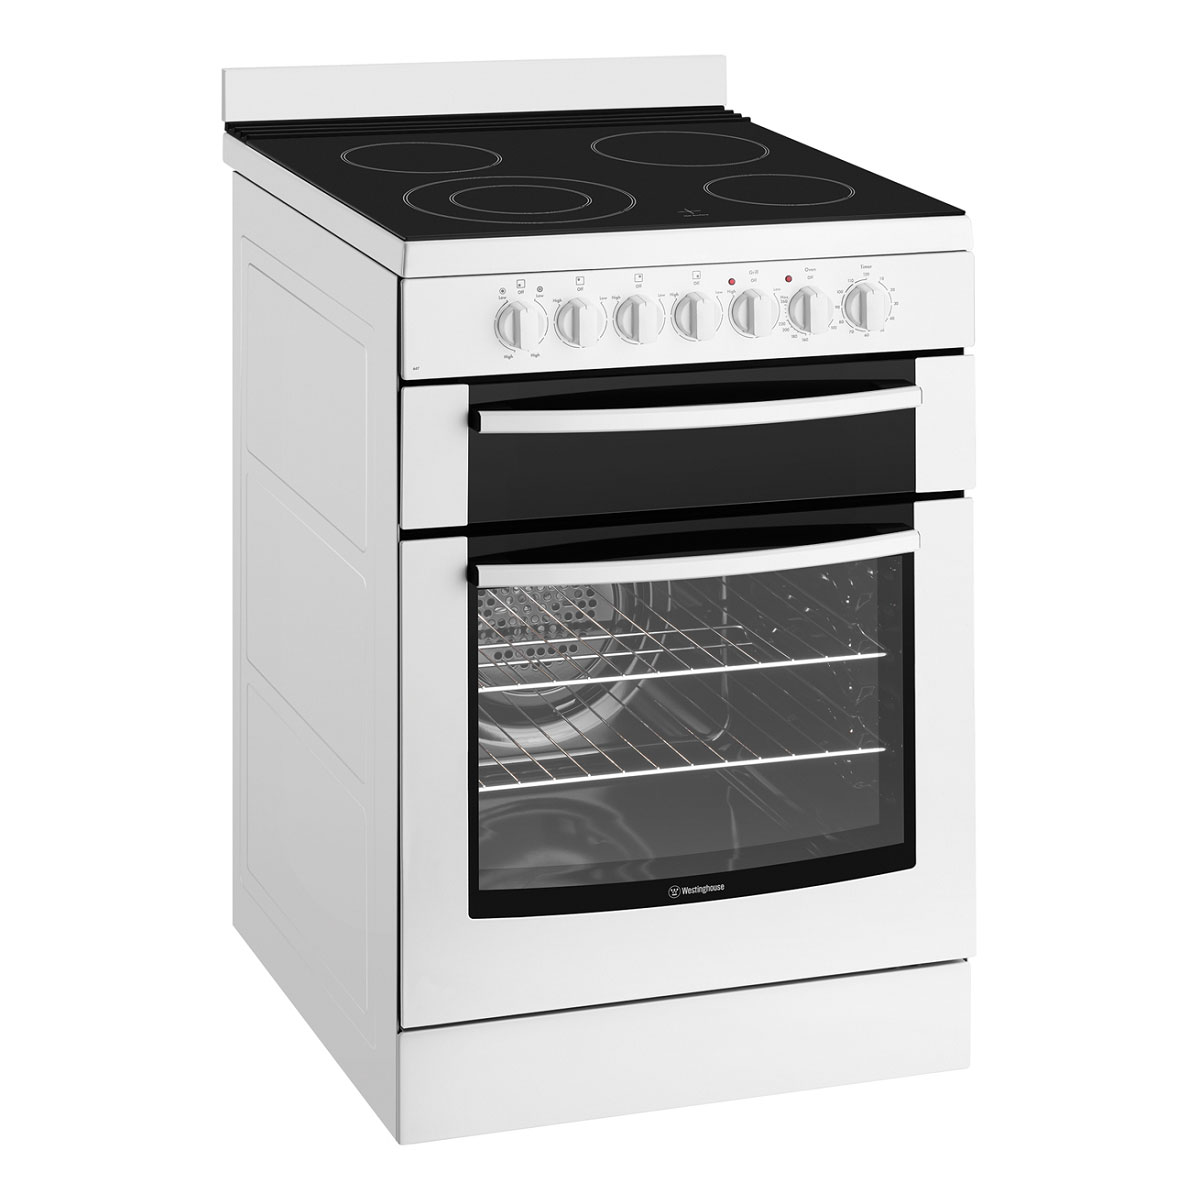 Westinghouse WFE647WA Freestanding Electric Oven Stove